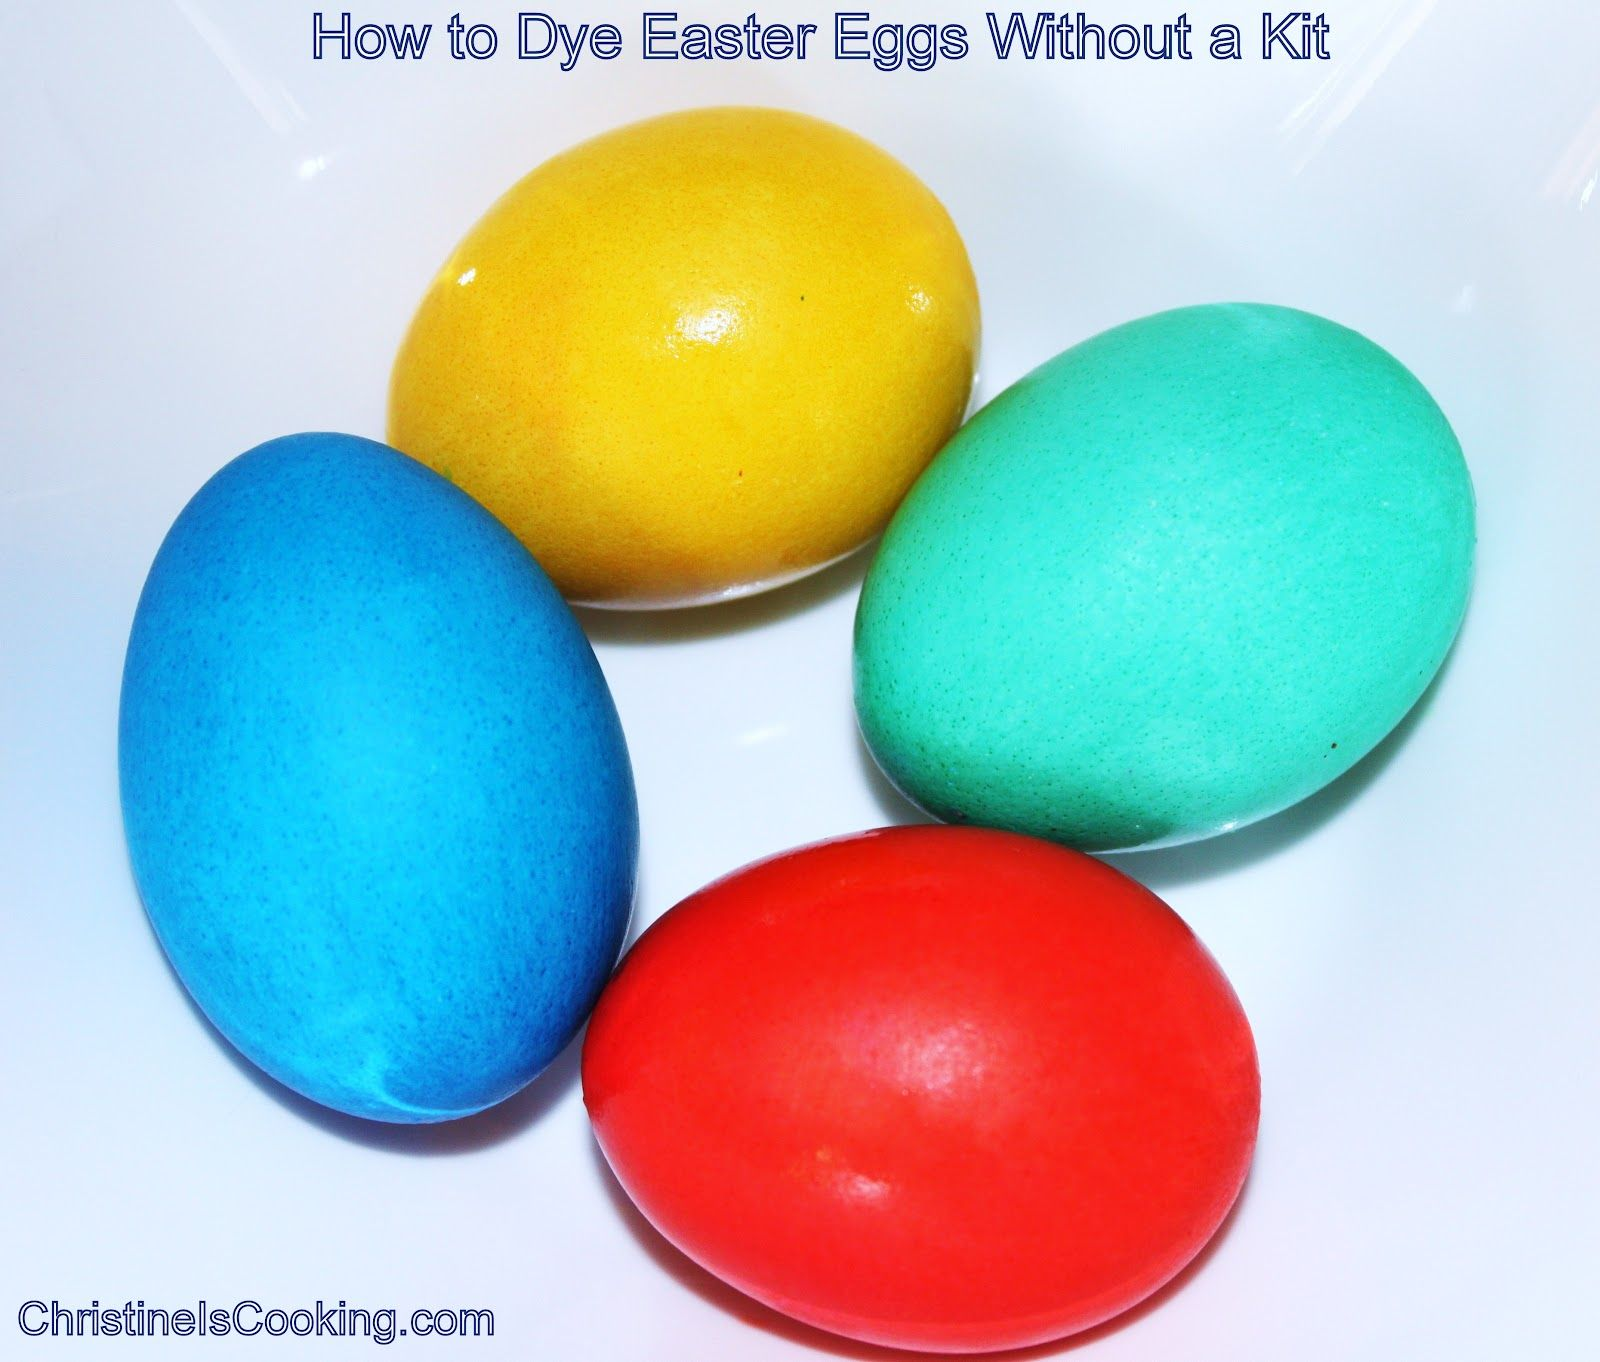 Christineiscooking Com How To Dye Easter Eggs Without A Kit Food